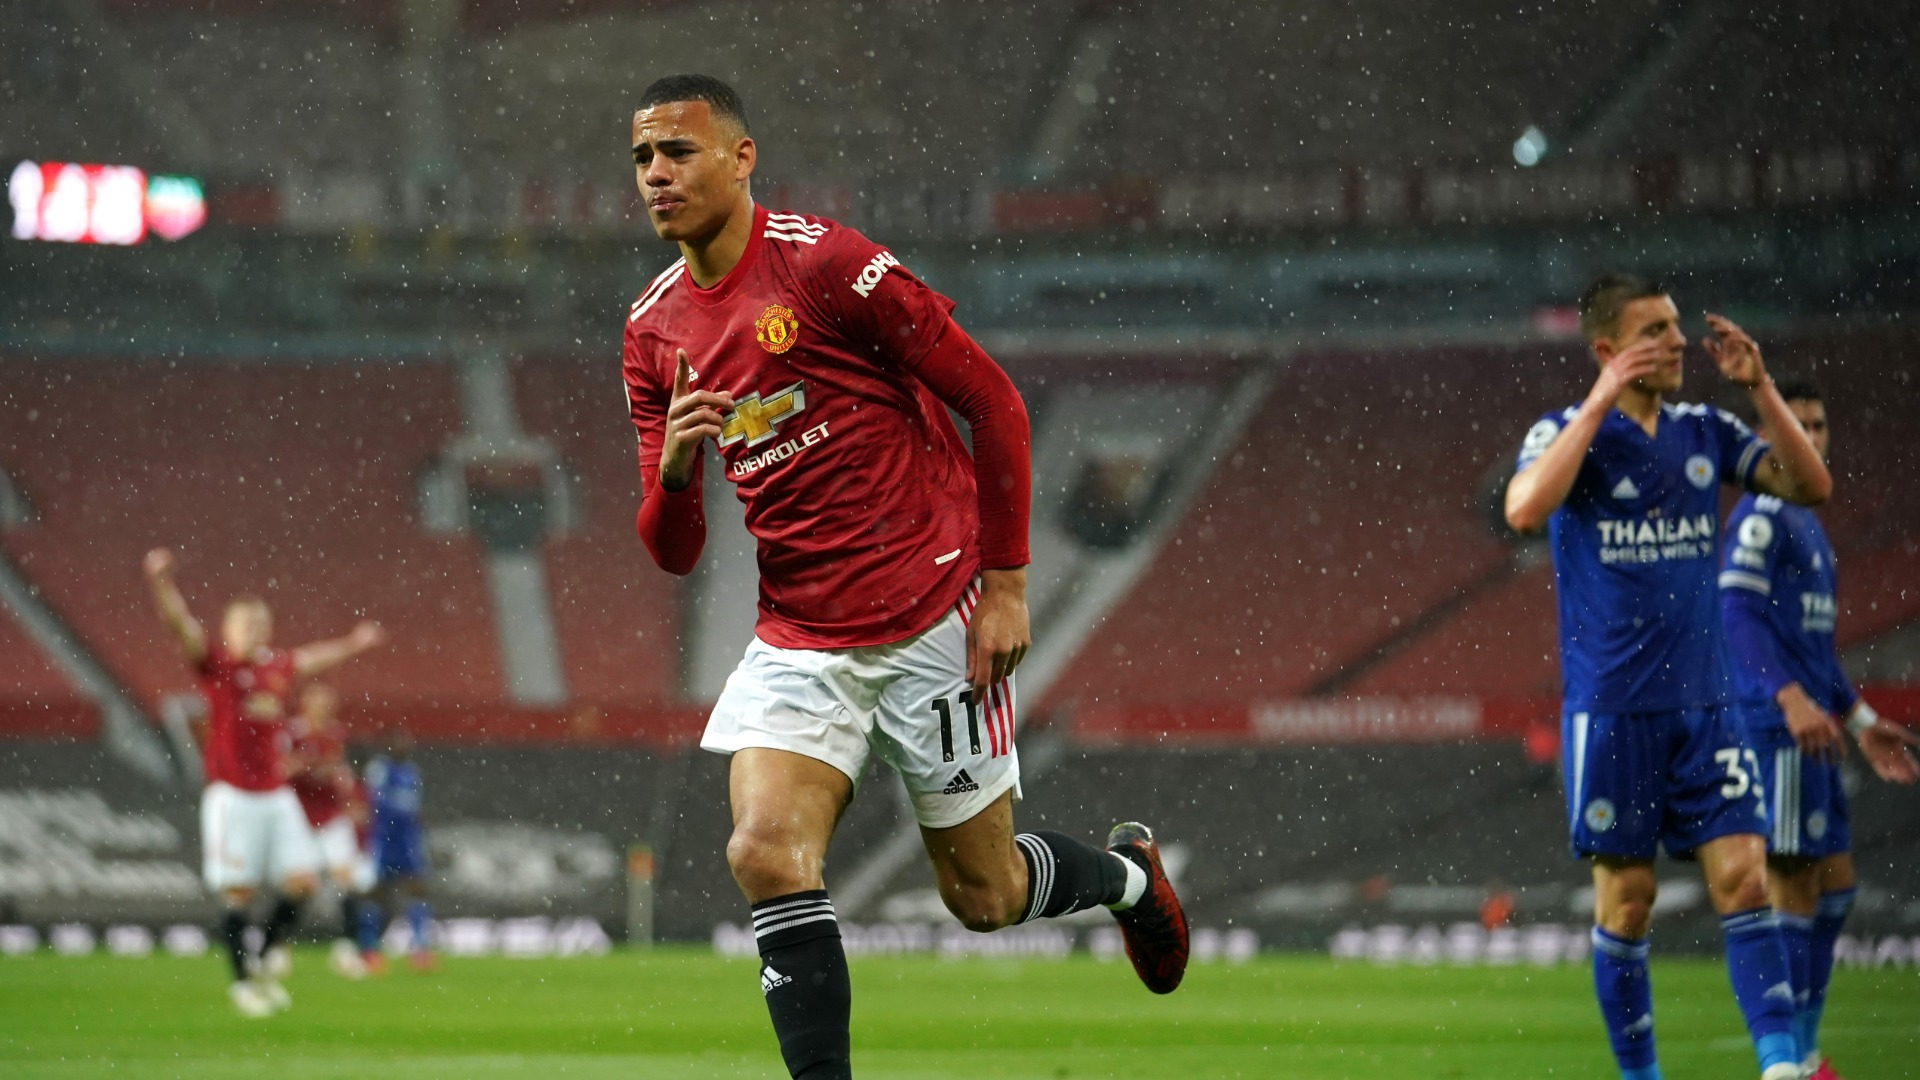 Mason Greenwood has rediscovered his best form and Ole Gunnar Solskjaer wants him to take on even more responsibility.